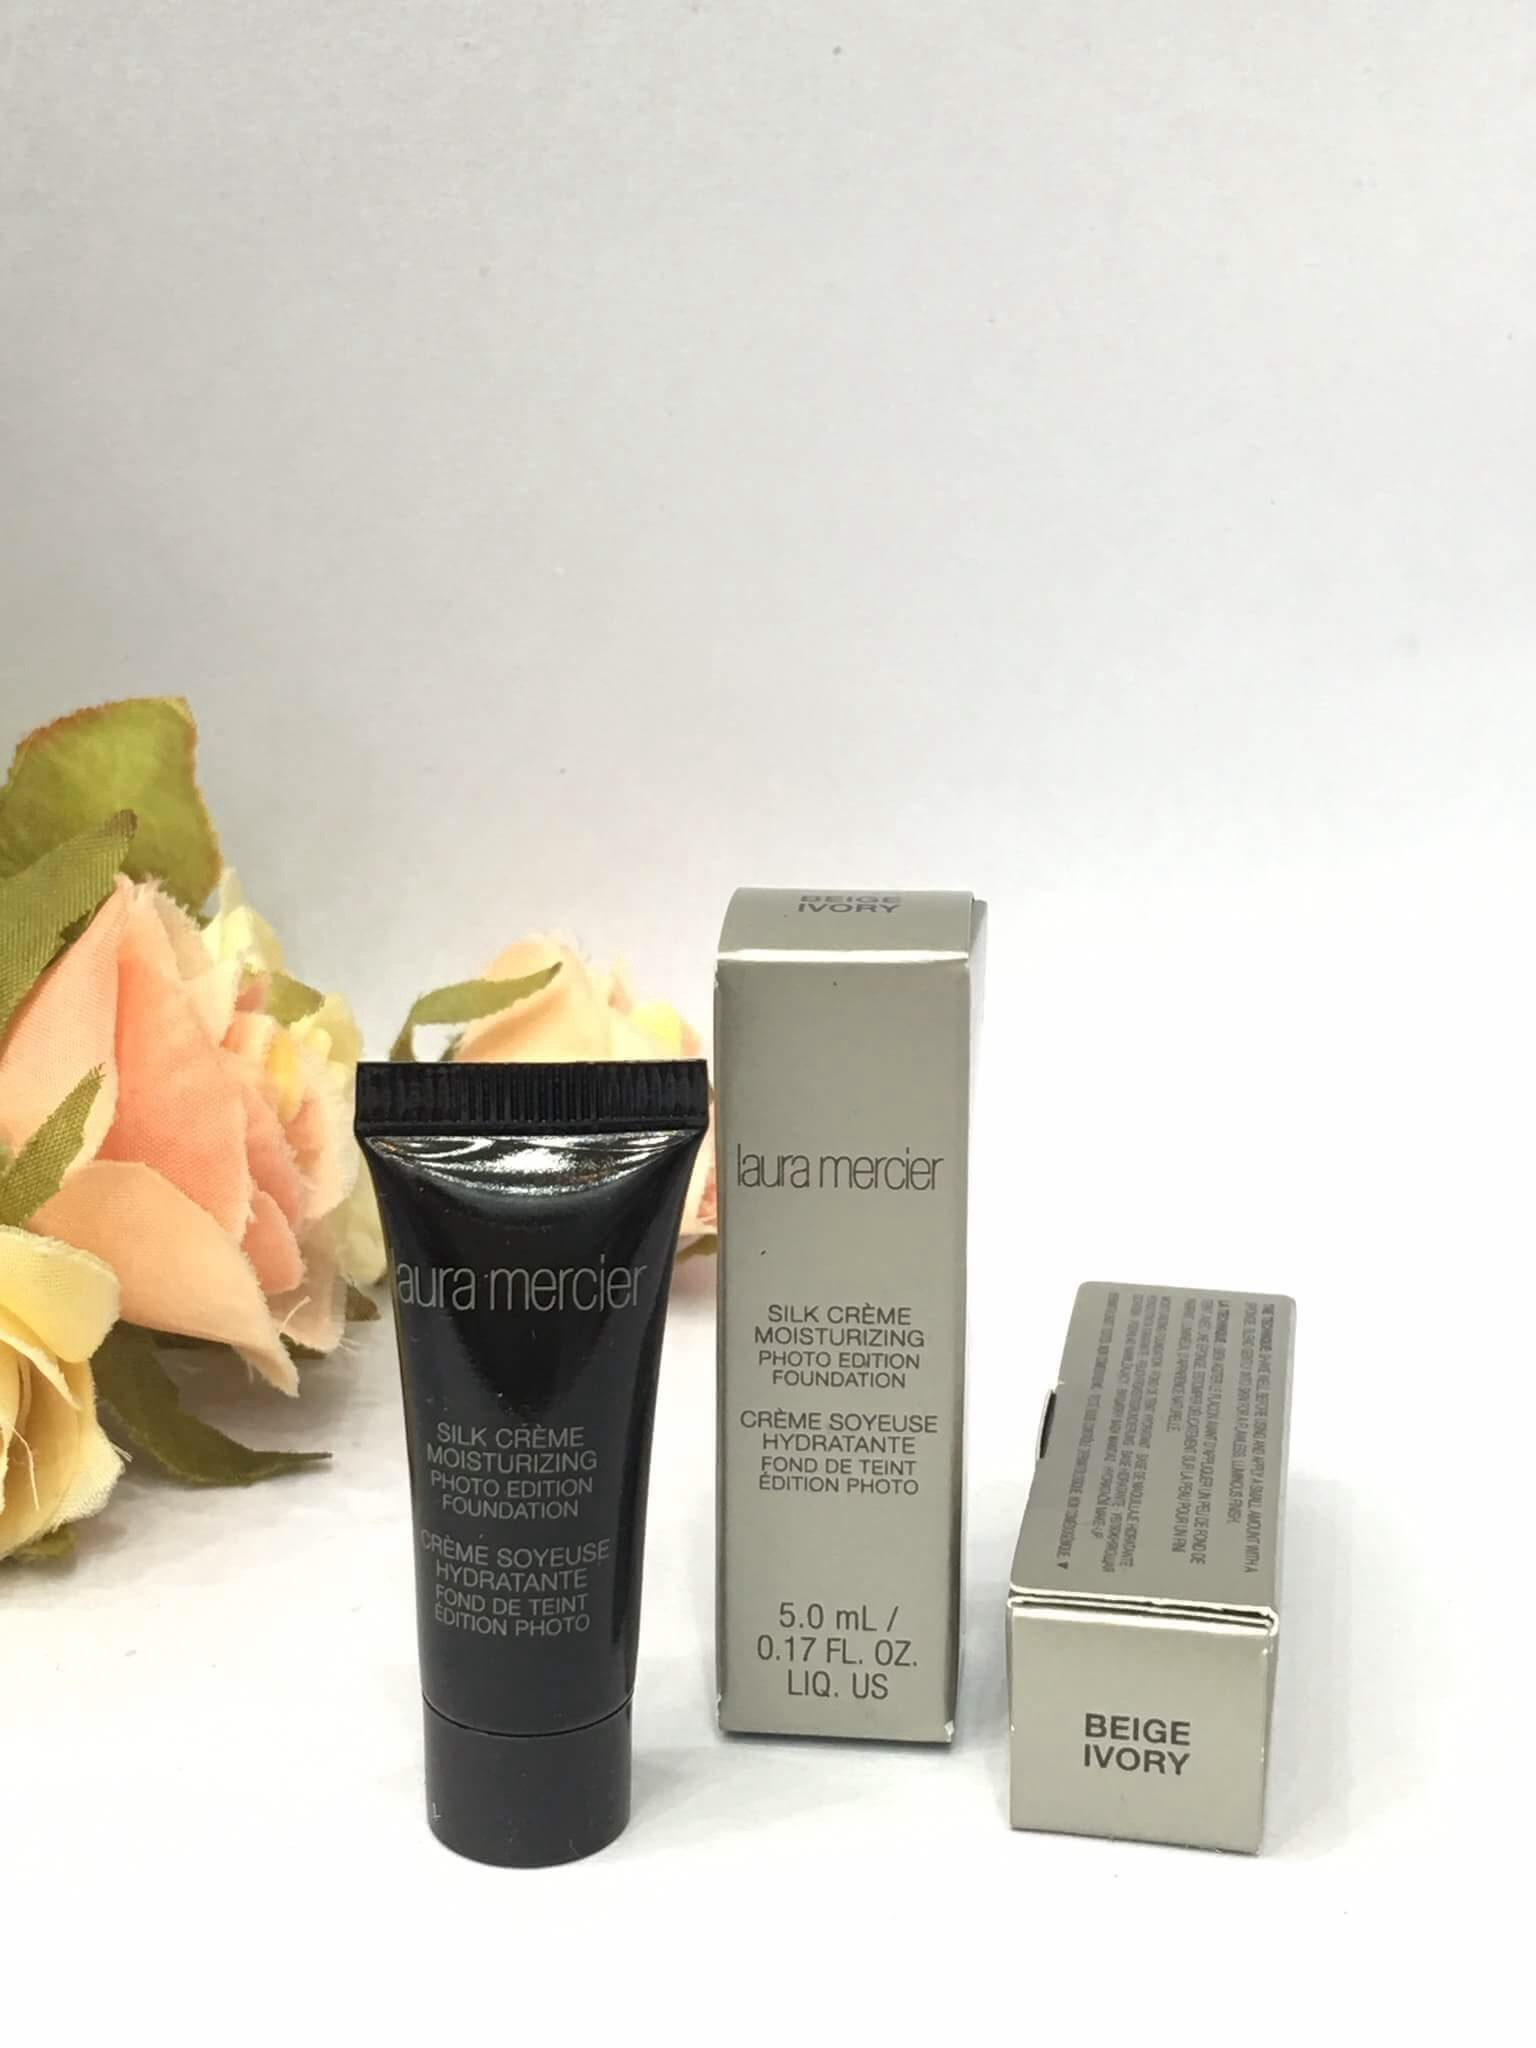 Laura Mercier Silk Creme Oil Free Photo Edition Foundation (5ml) #BeigeIvory